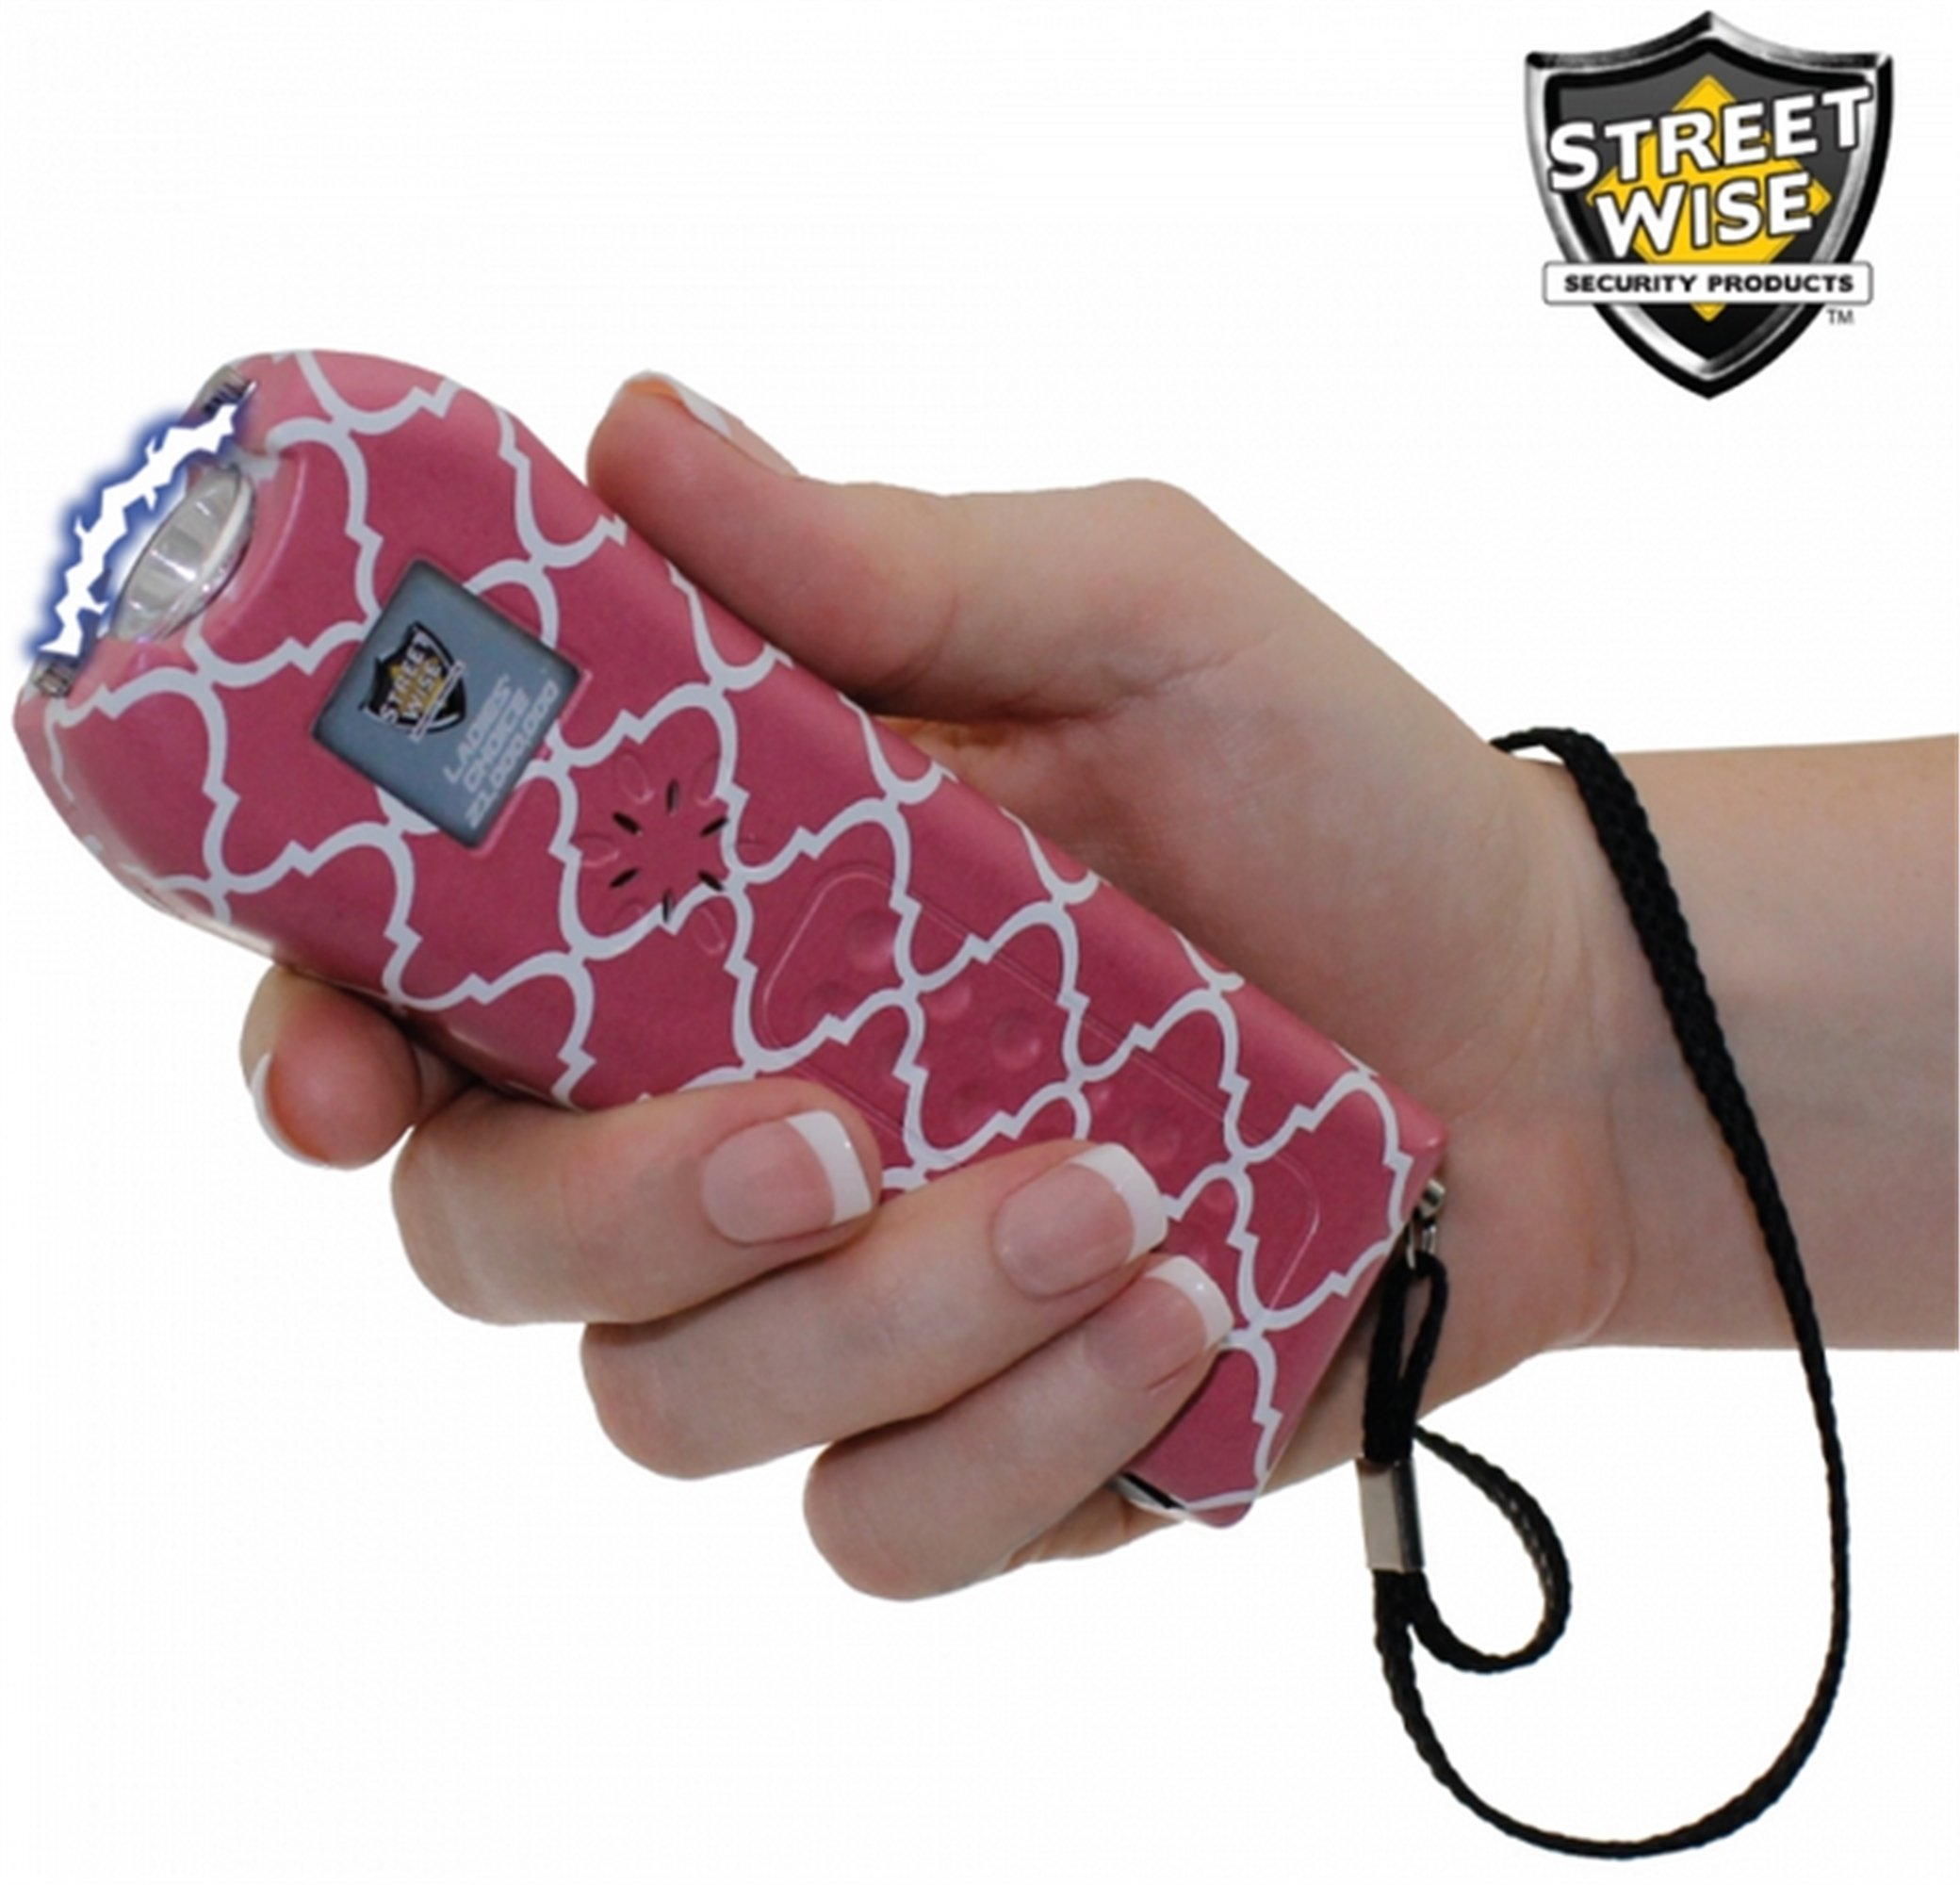 StreetWise Ladies Choice 21 Million Volt Rechargeable Stun Gun with Alarm and Flashlight, Pink Stripe (2) by Streetwise Security